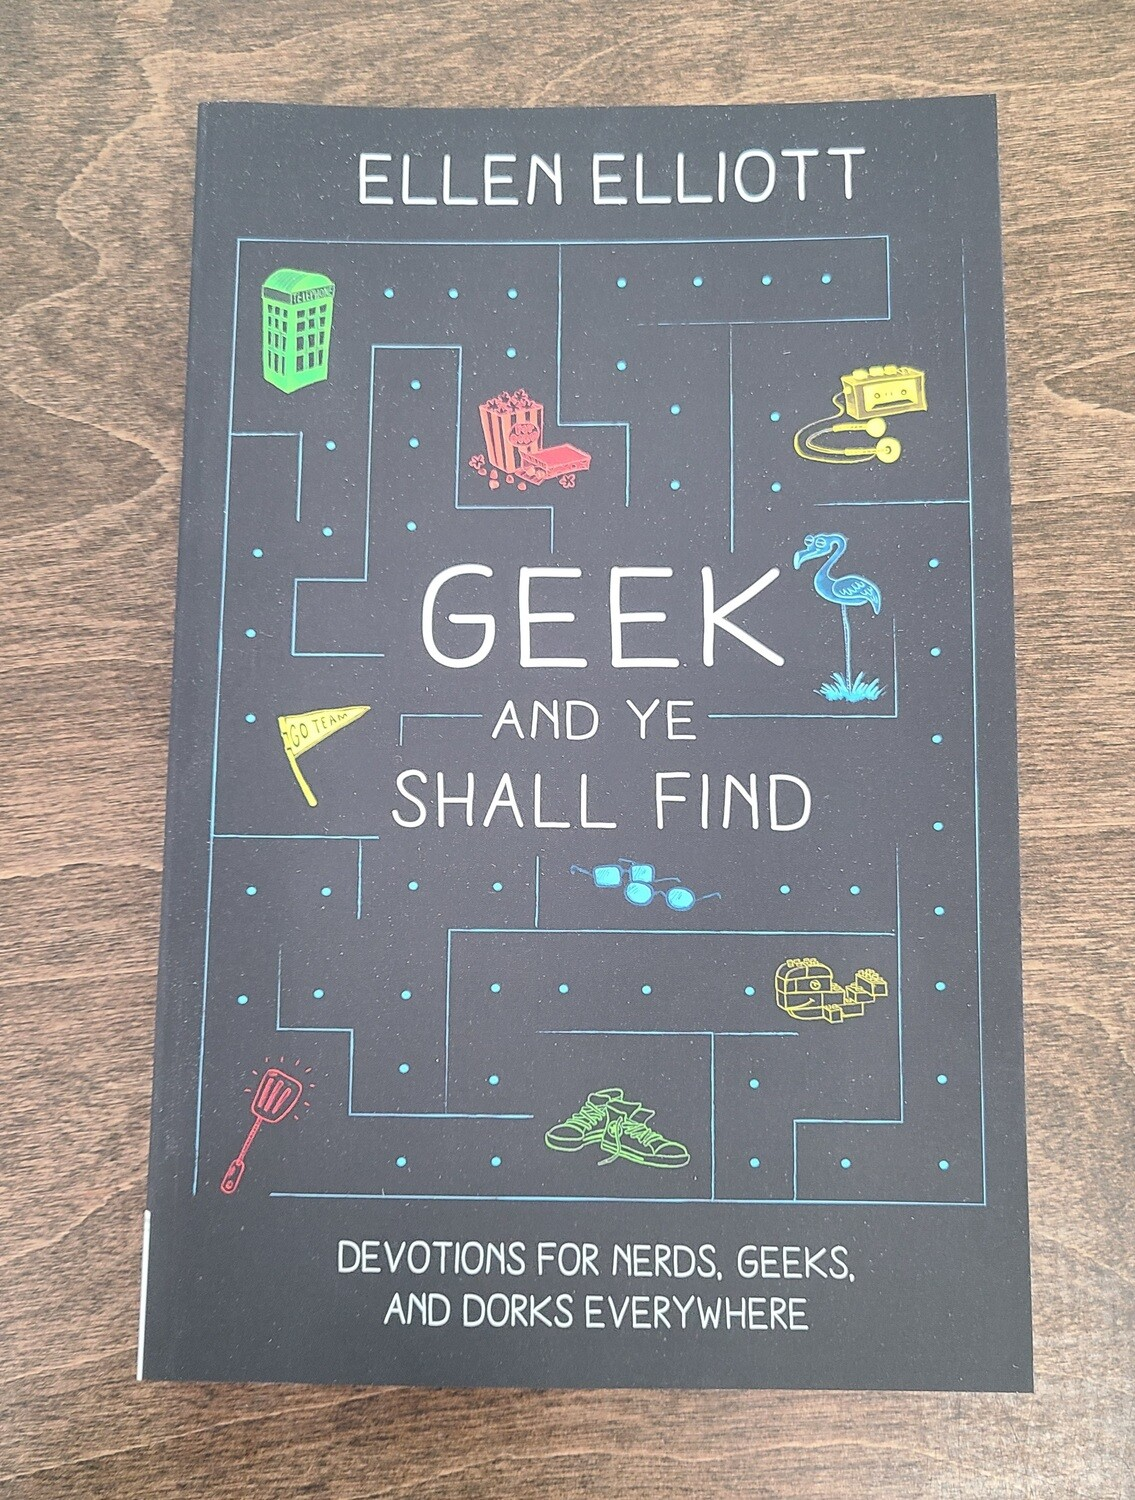 Geek and Ye Shall Find: Devotions for Nerds, Geeks, and Dorks Everywhere by Ellen Elliott